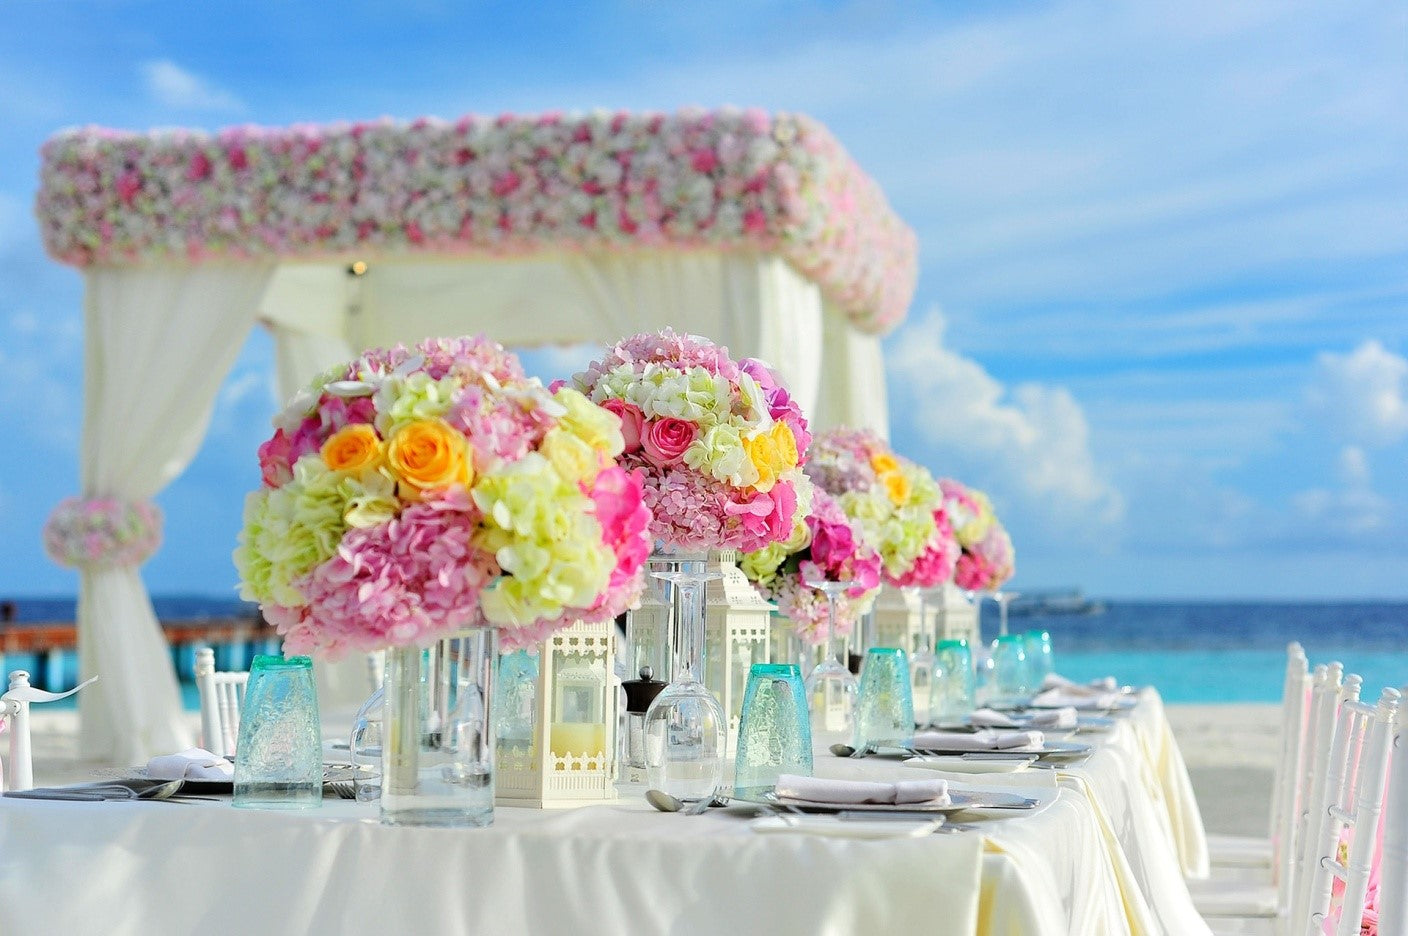 image of a white pop up gazebo at a wedding by the beach